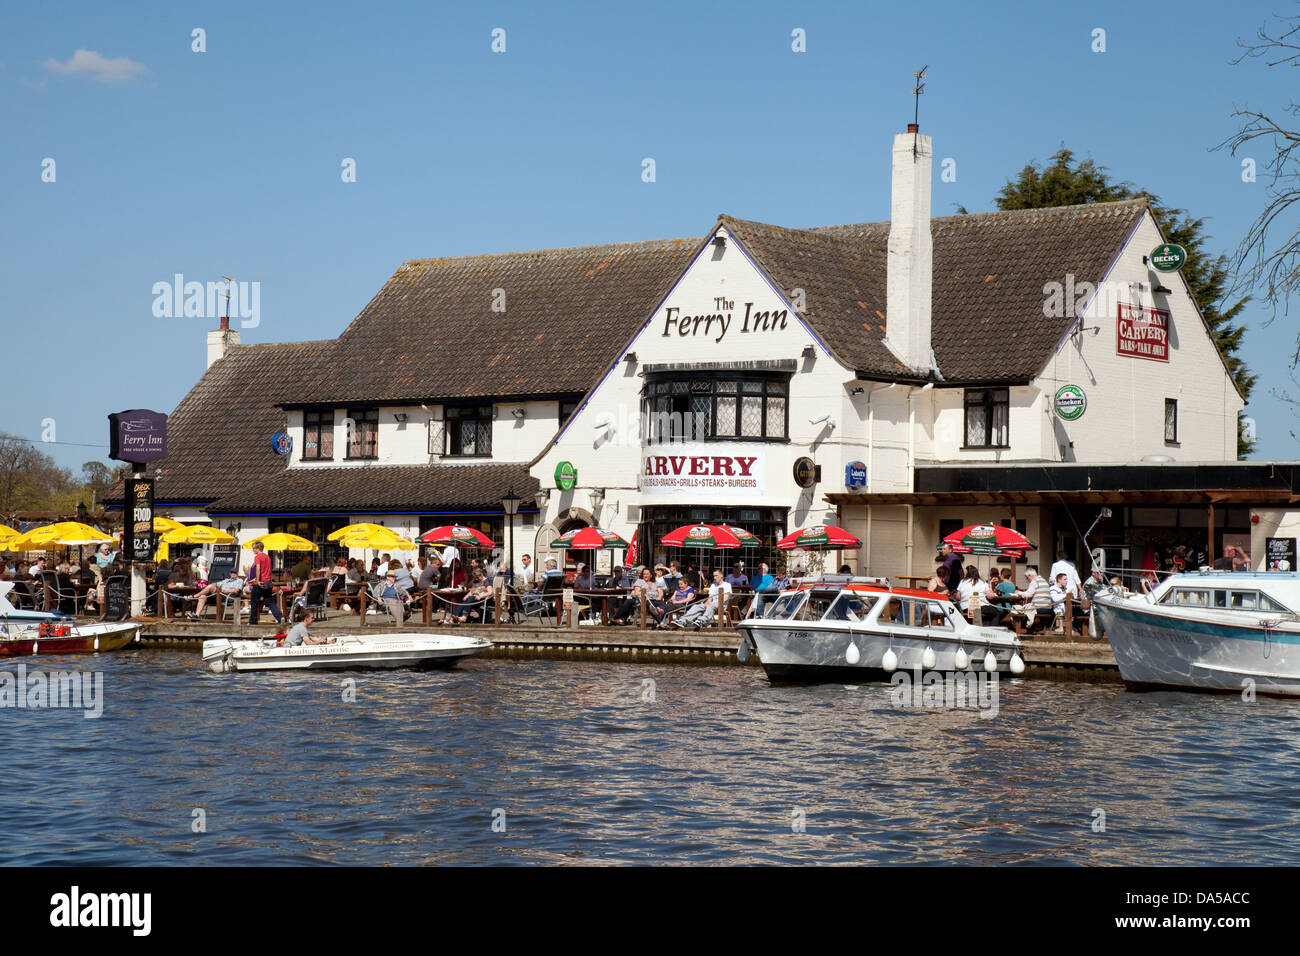 Norfolk Broads pubs inns - The ferry Inn, Horning on the River Bure,  Norfolk, East Anglia, UK - Stock Image